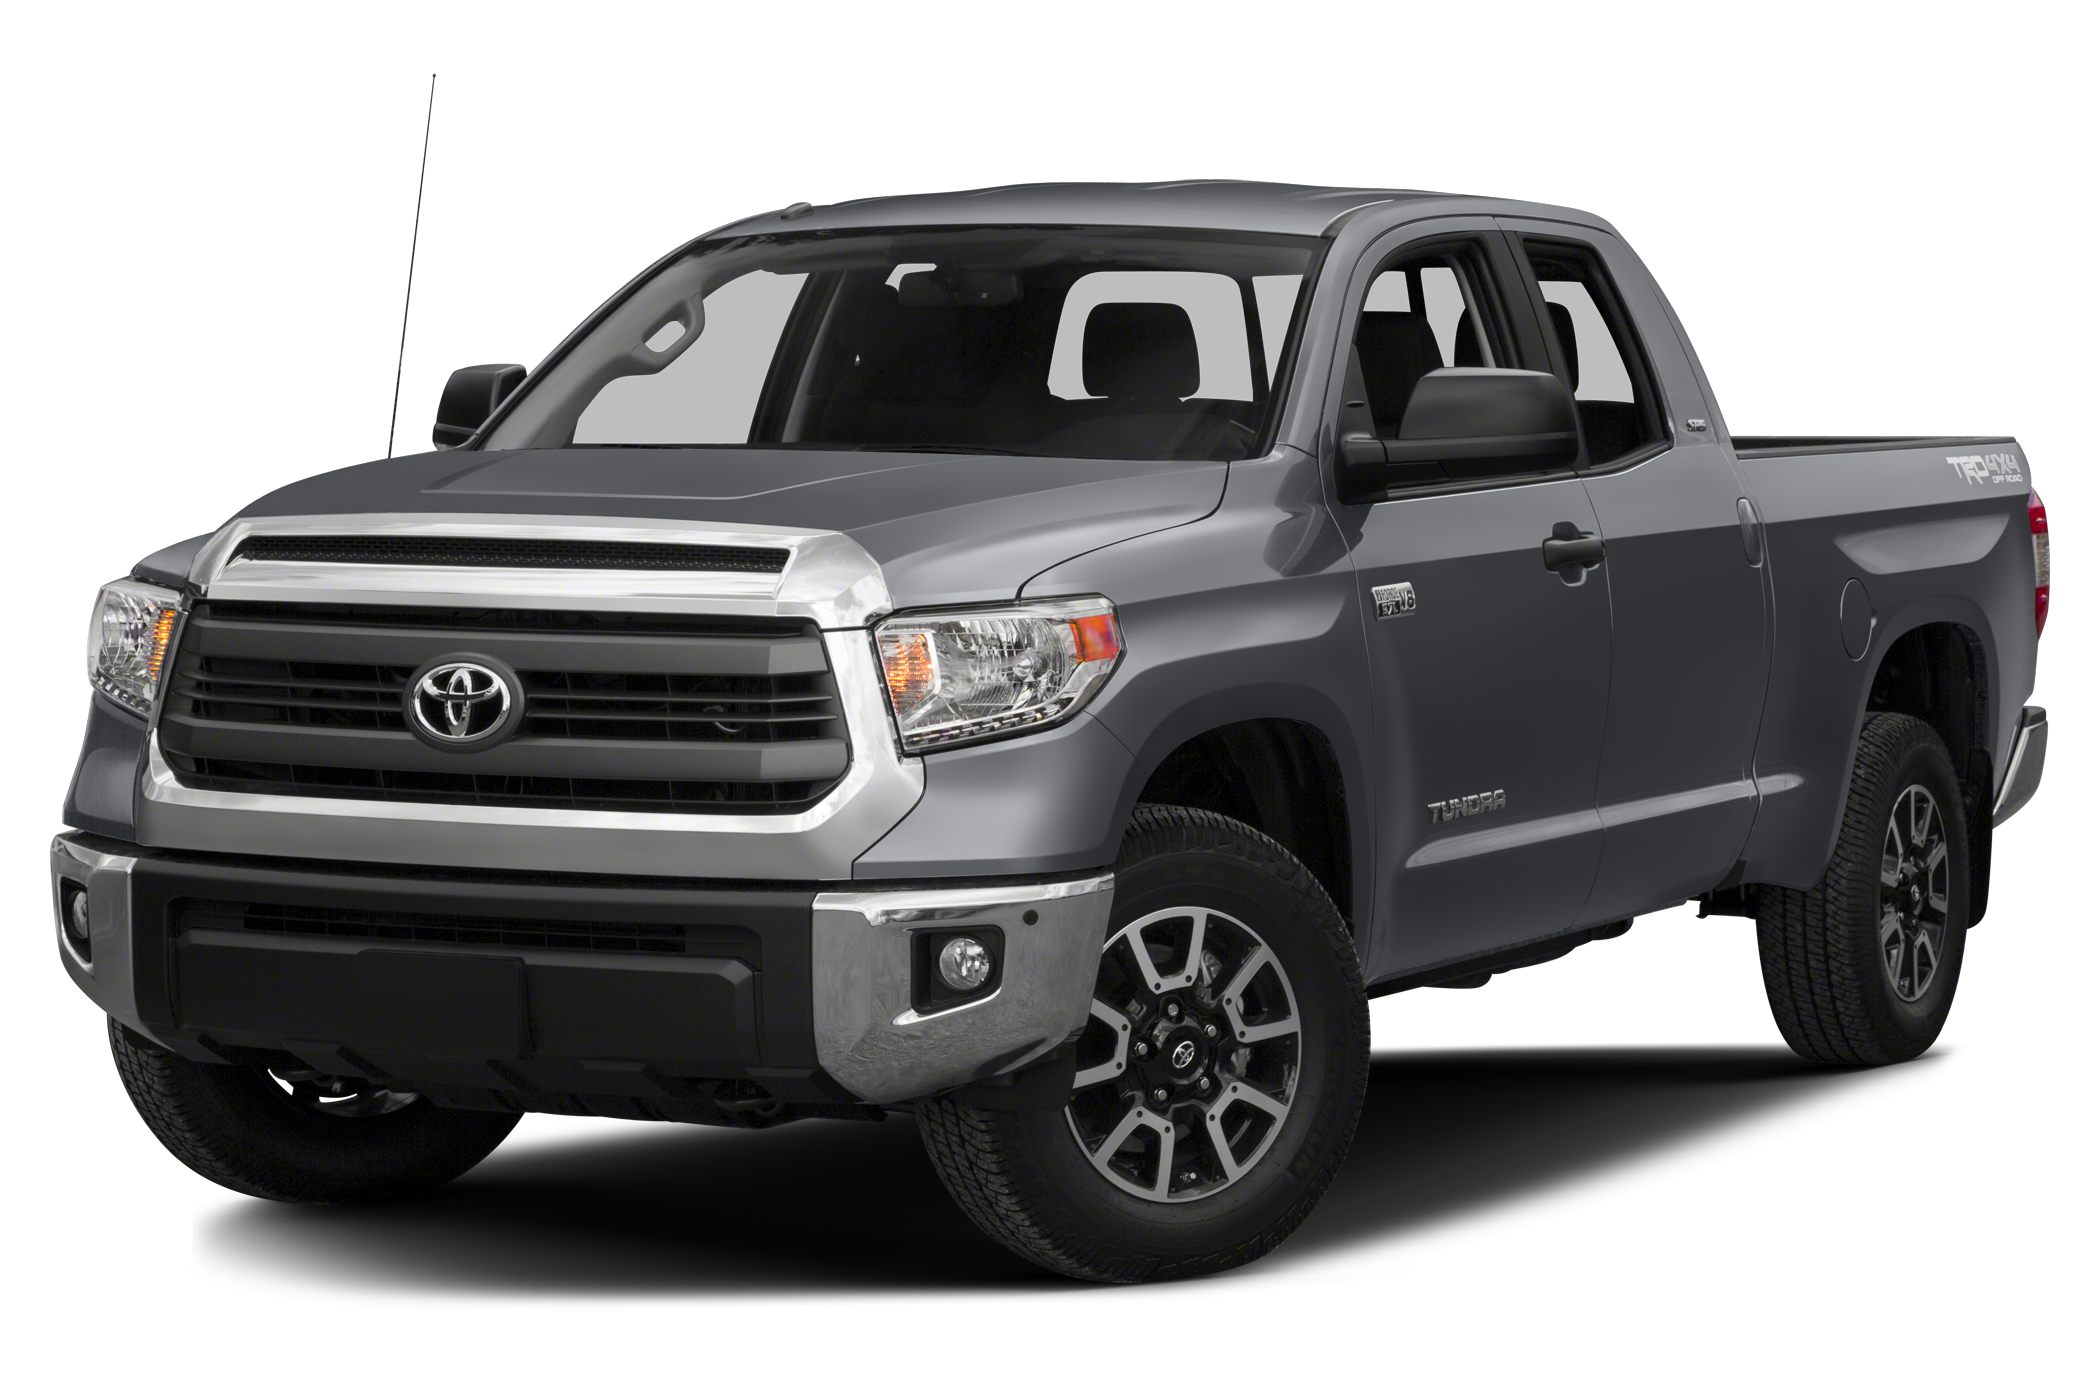 2015 Toyota Tundra SR5 Crew Cab Pickup for sale in Allentown for $40,675 with 0 miles